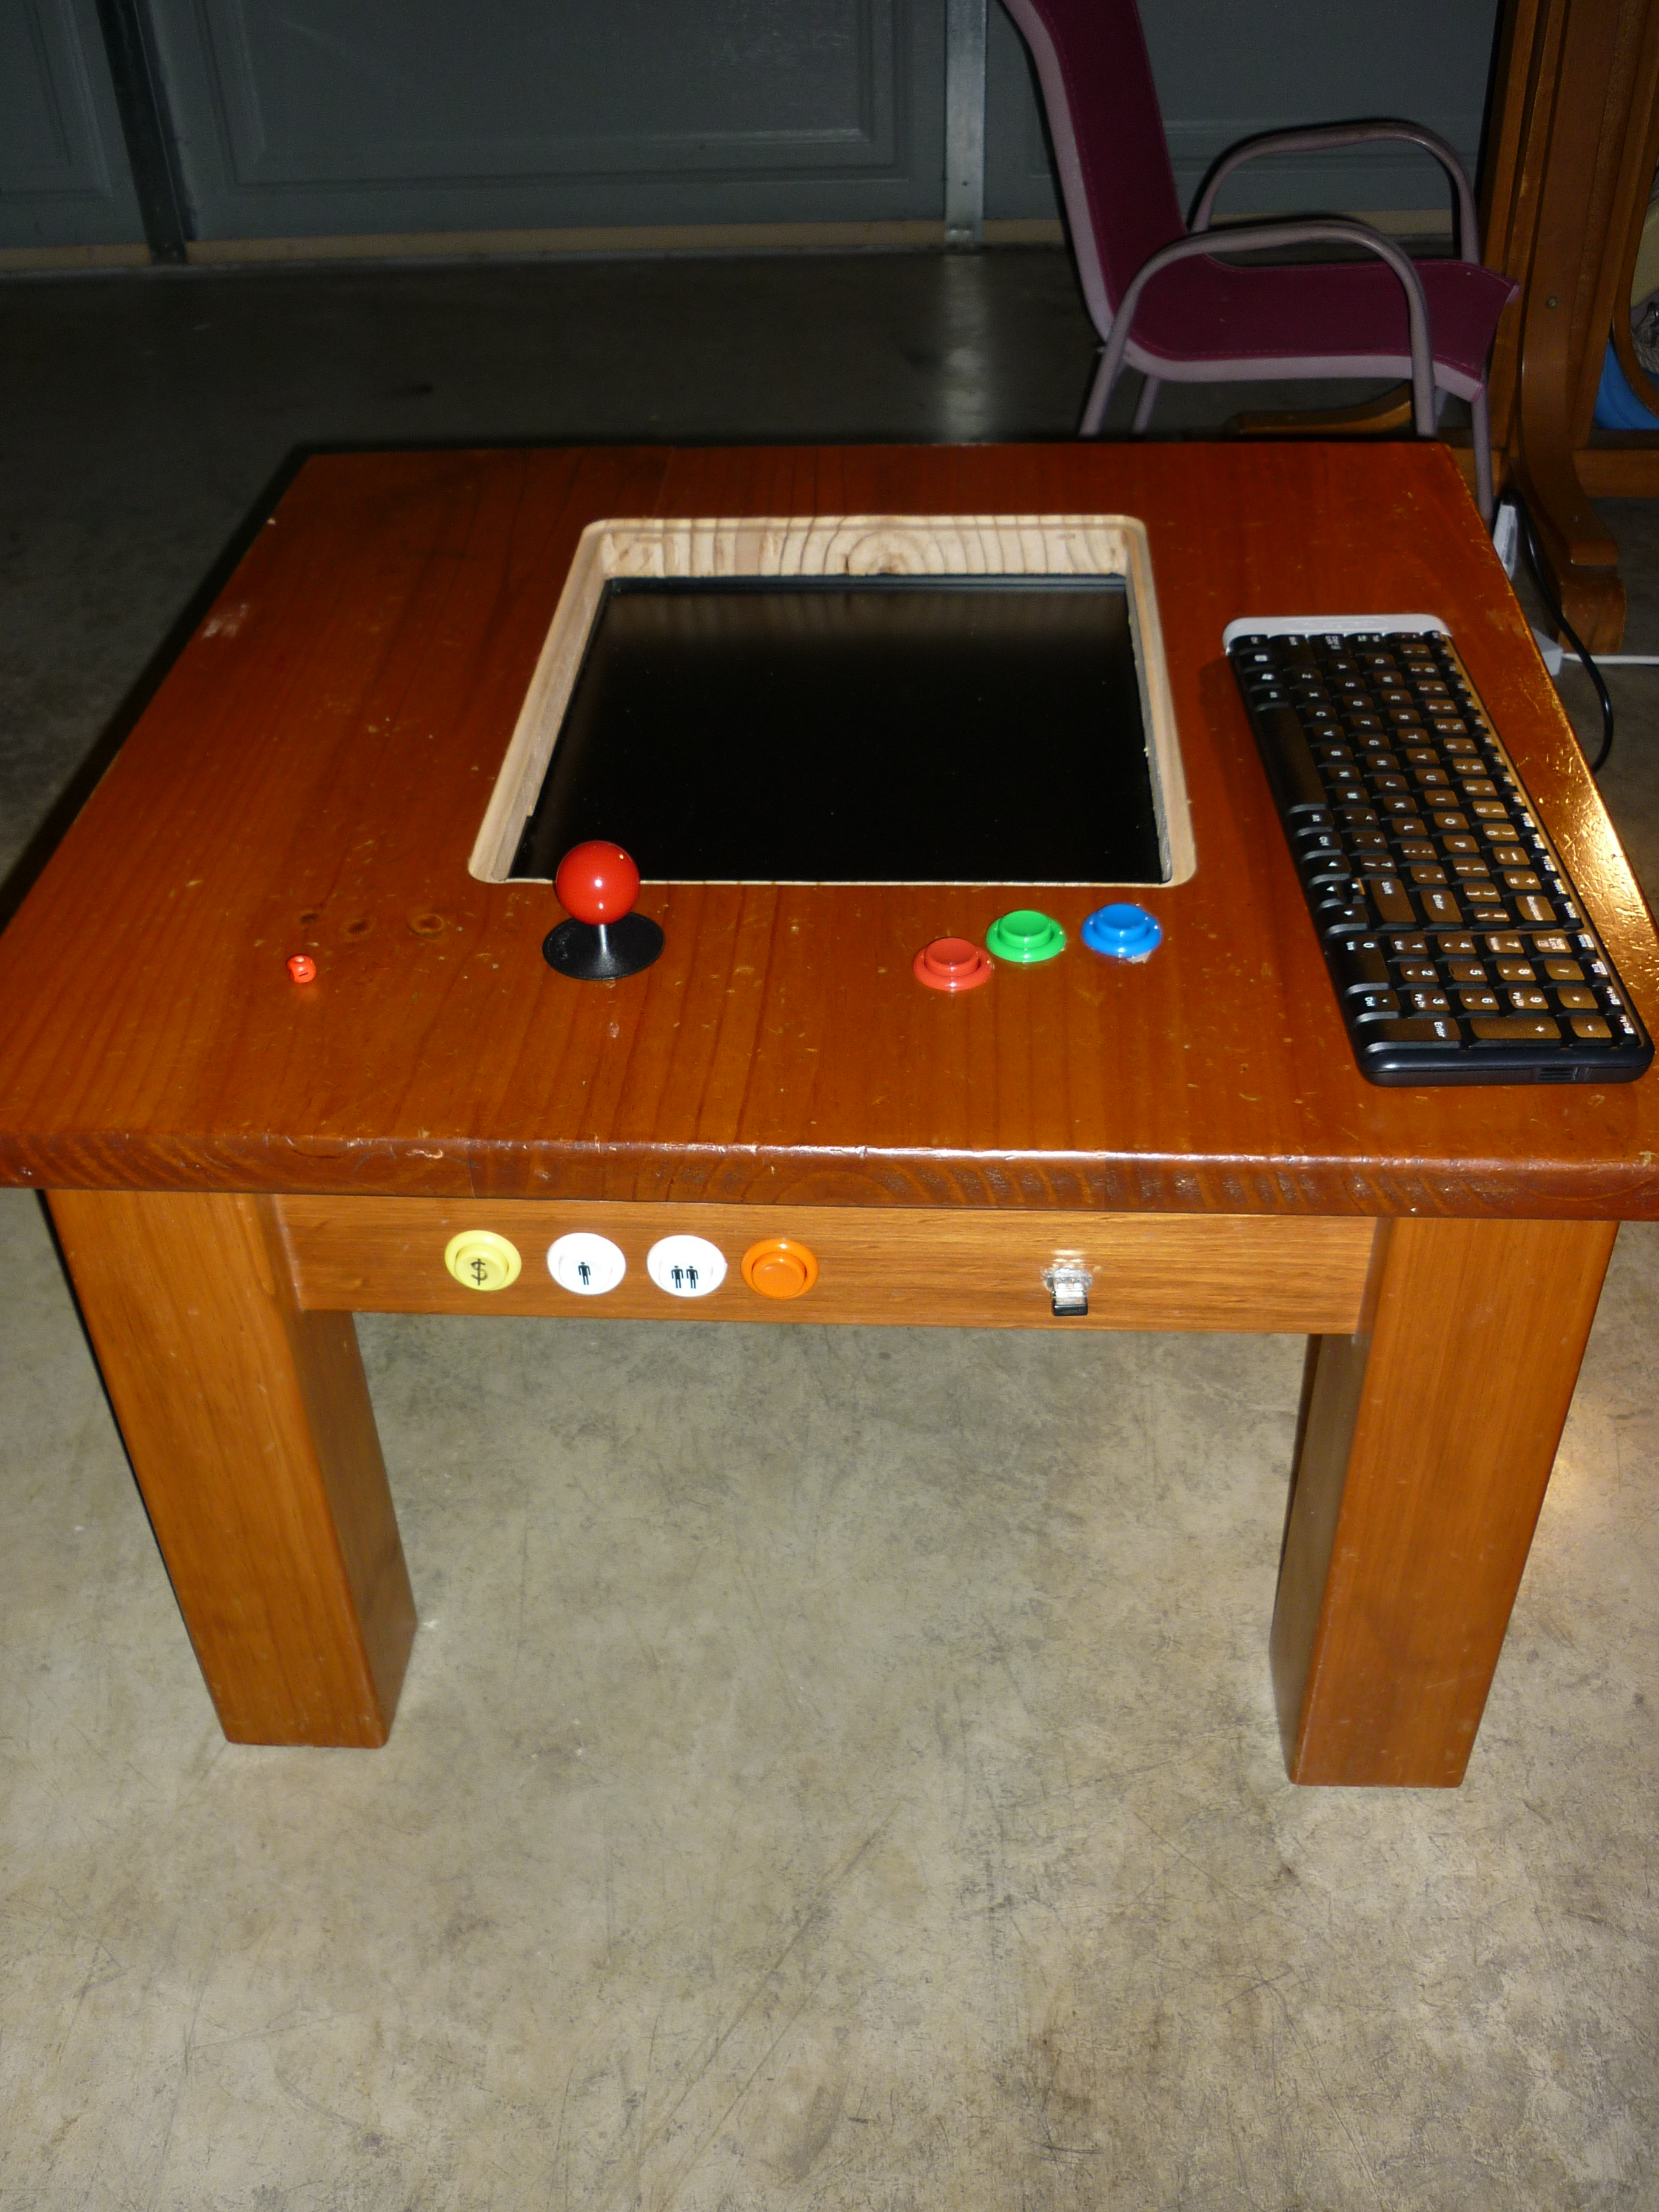 Picture of MAME Gaming Table With Raspberry Pi